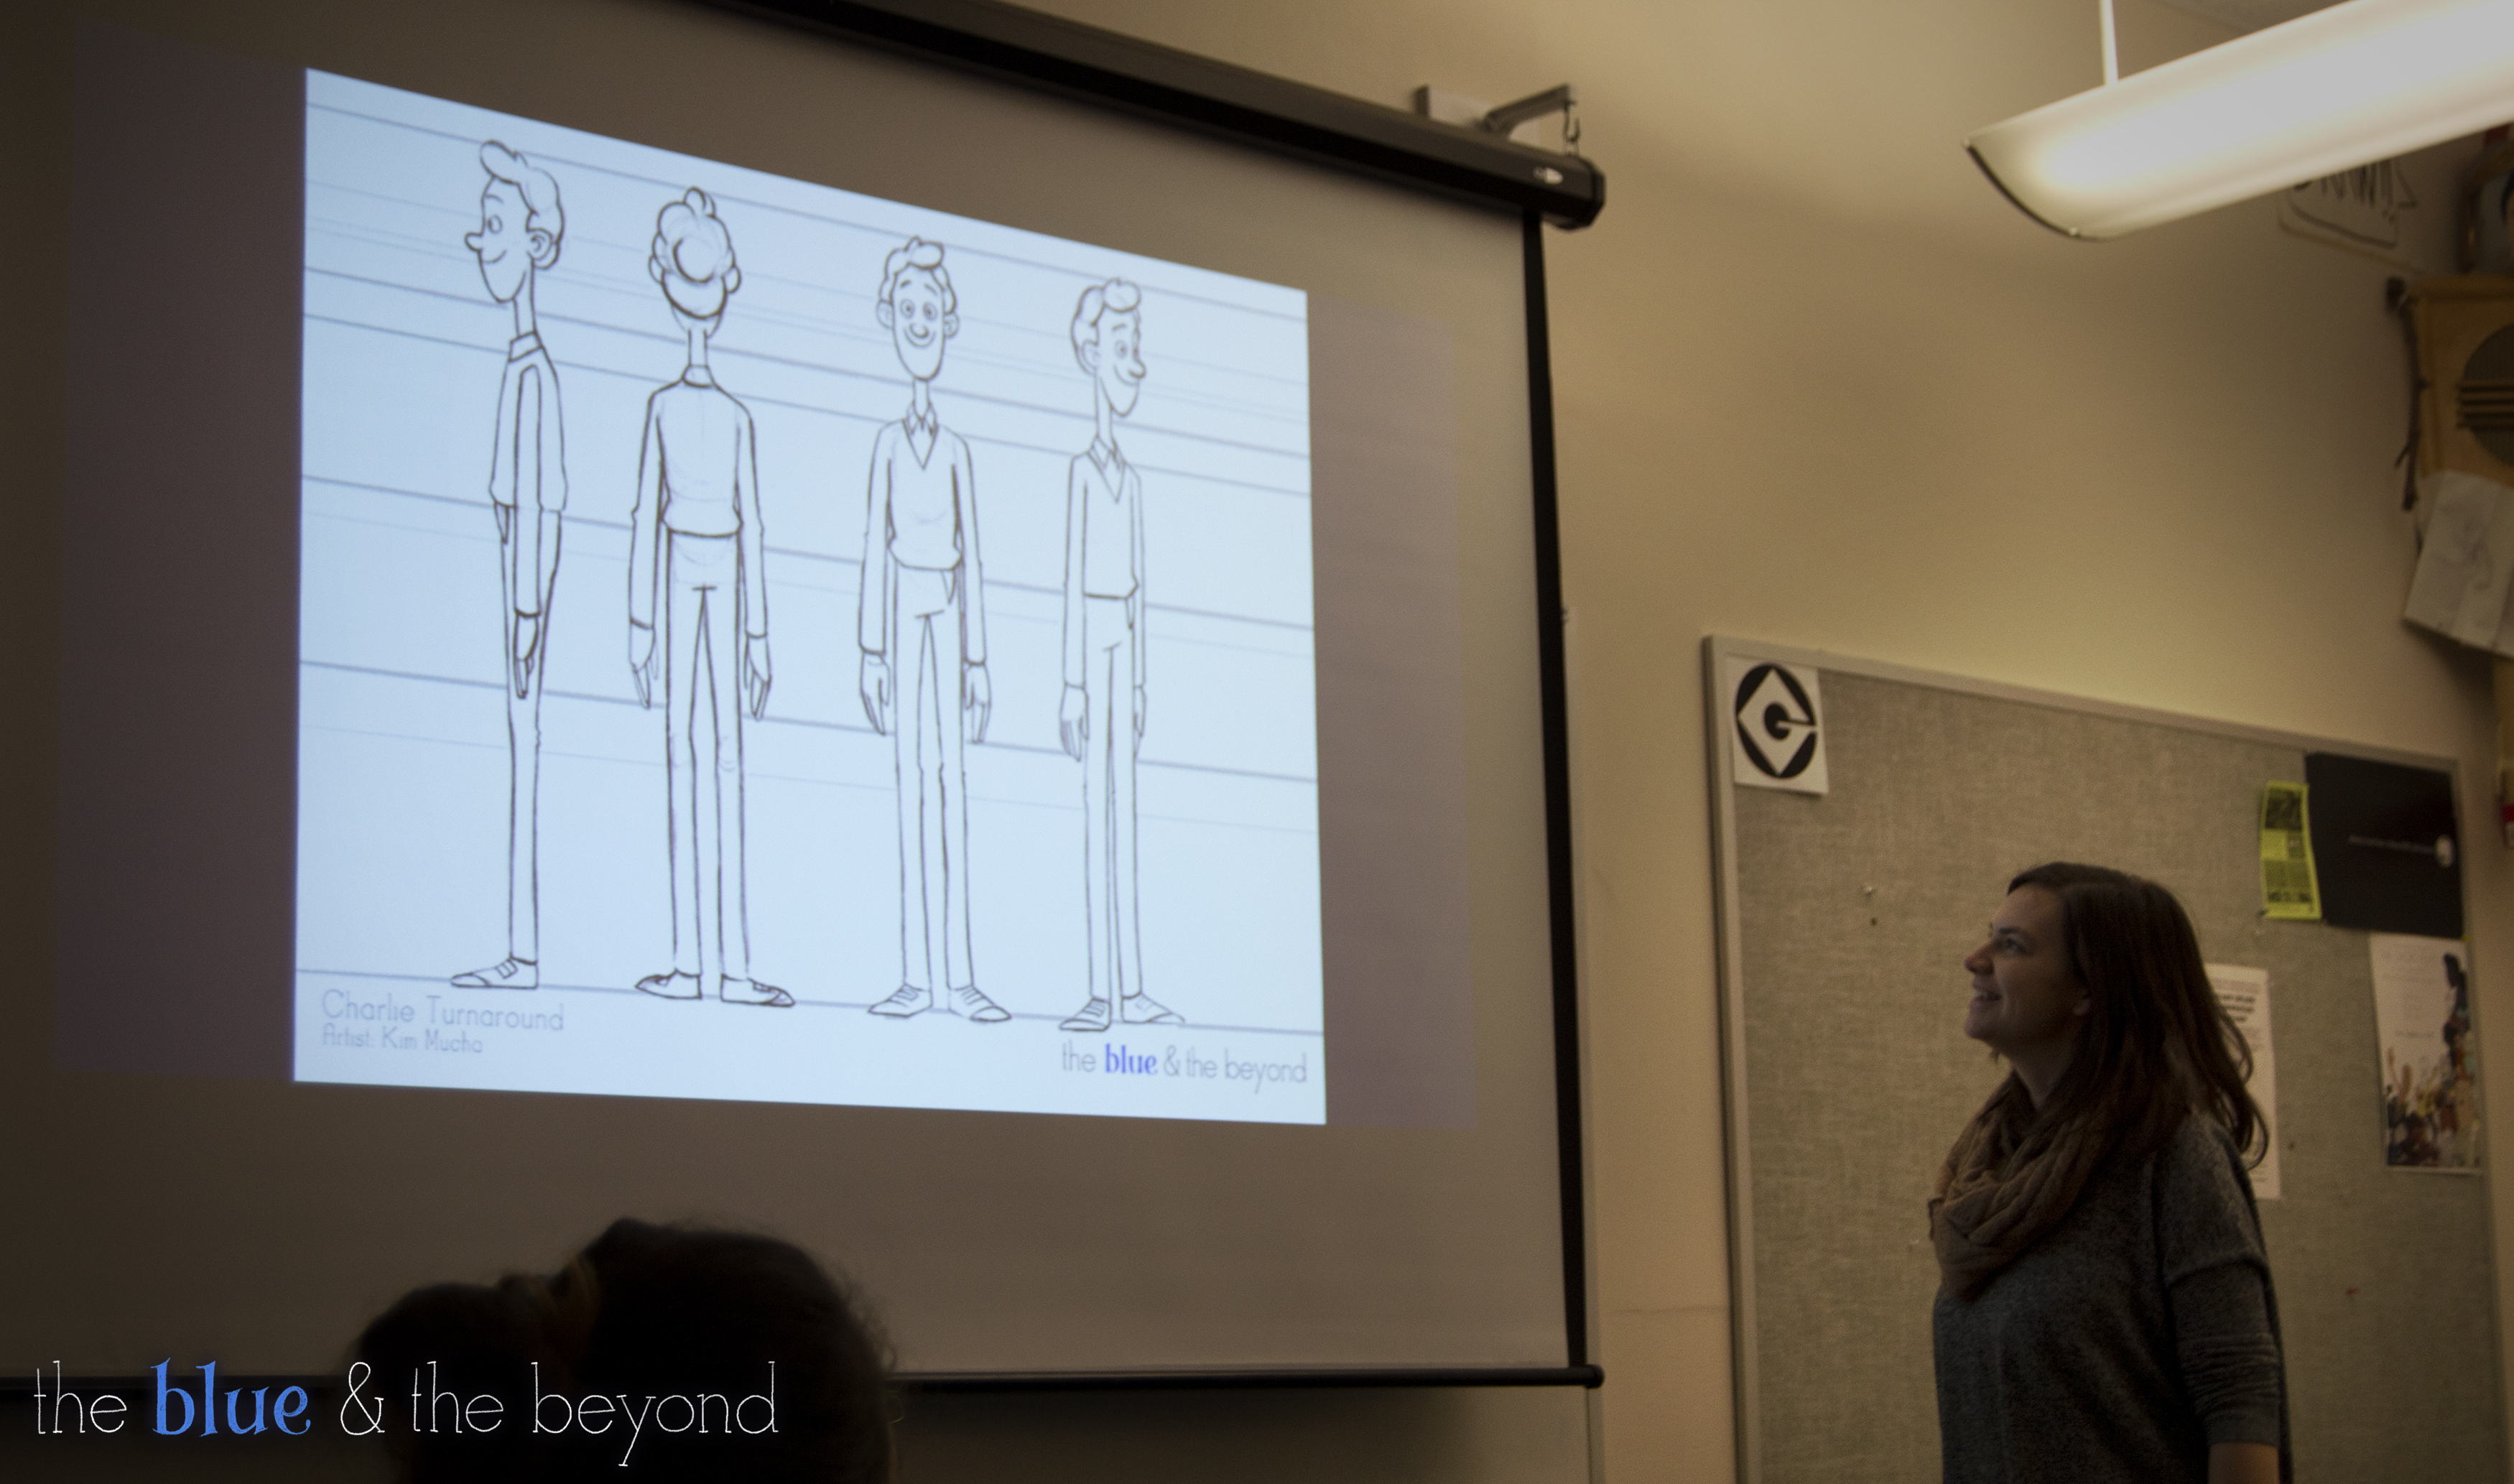 Producer and Supervising Animator Kimberly Mucha introduces the character of Charlie to the crew